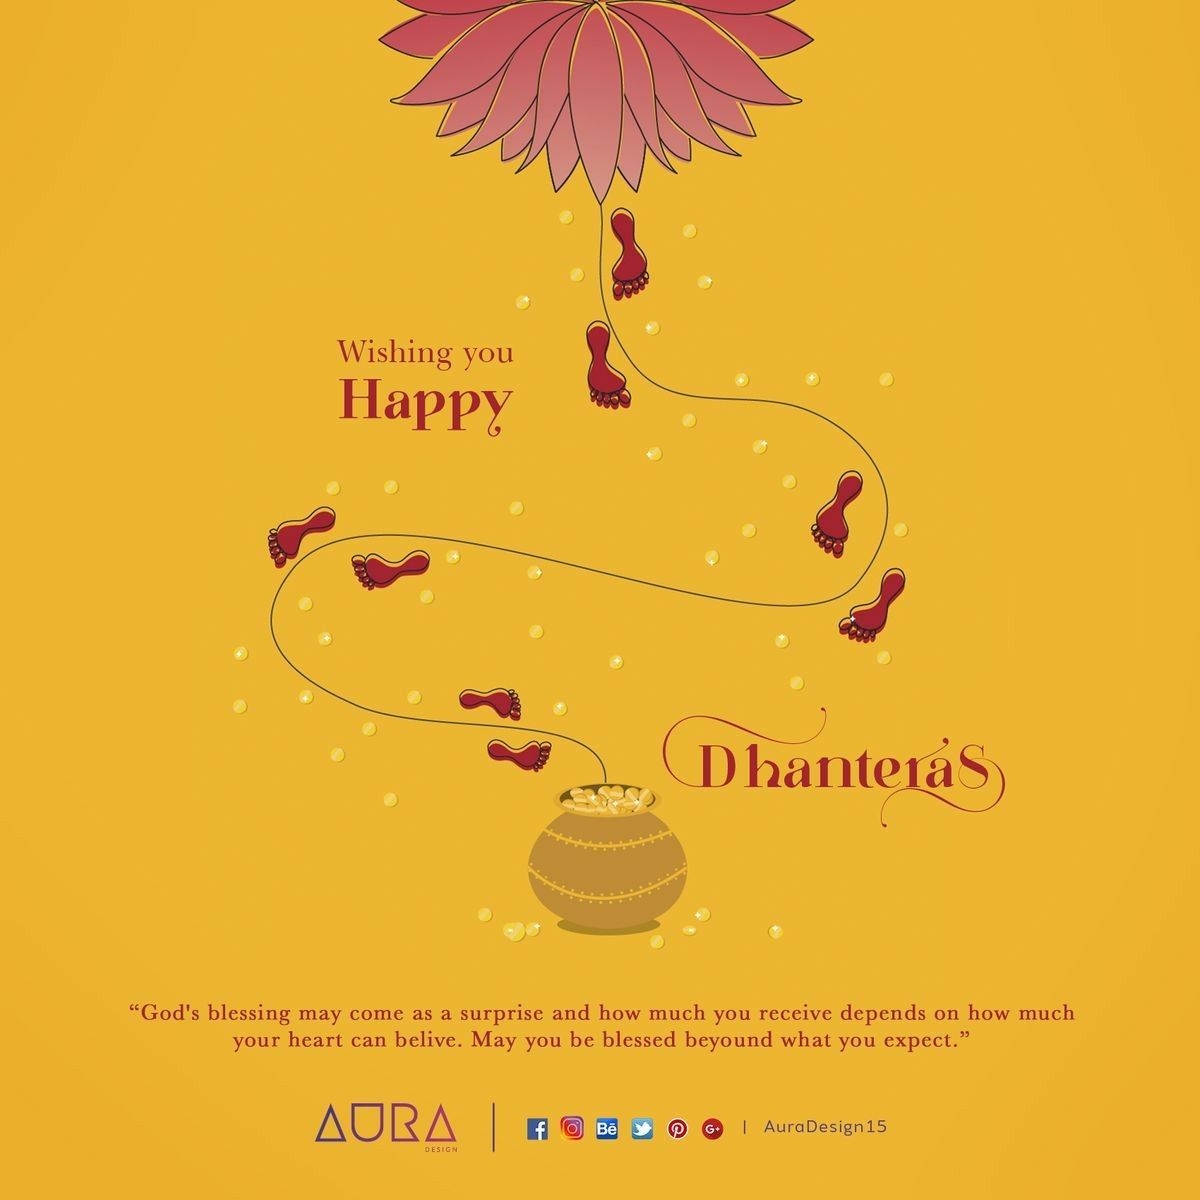 happy-dhanteras-images #happydhanteras happy-dhanteras-images #happydhanteras